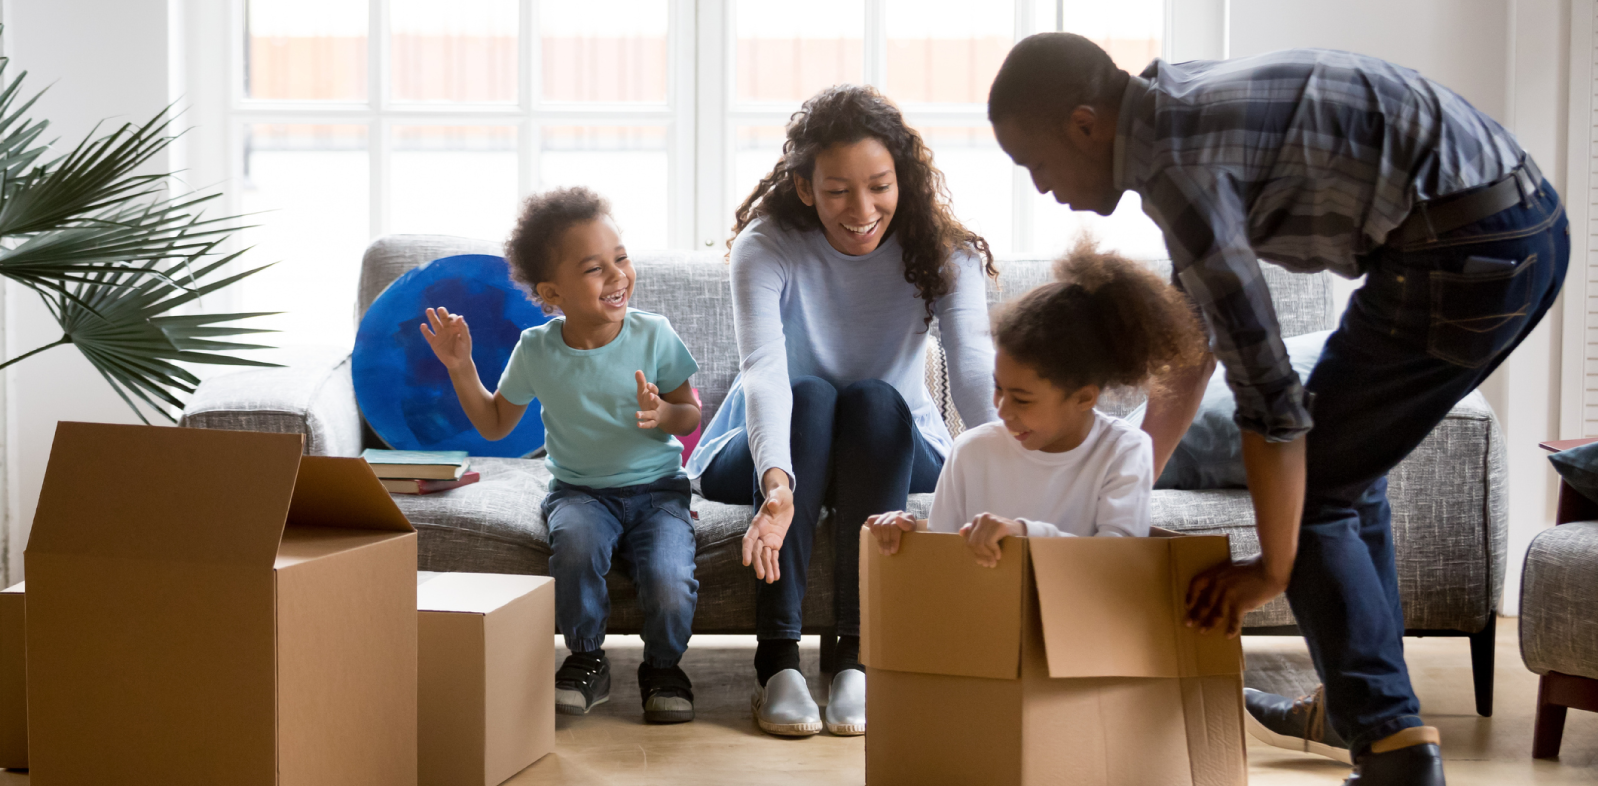 Moving Company in Beloit, WI and surroung areas